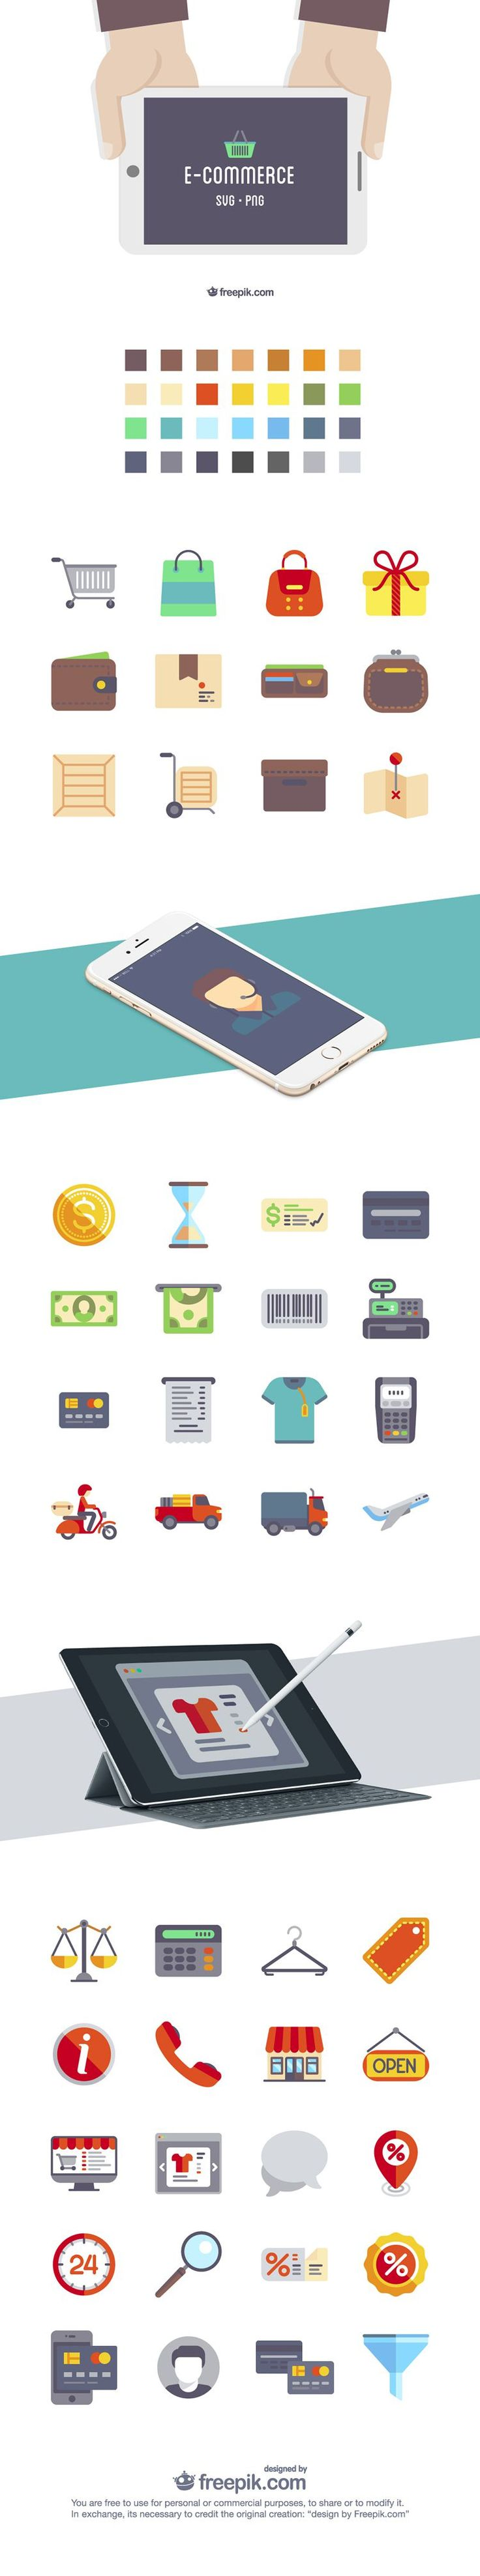 Freebie: The Flat eCommerce Icon Set (50 Icons, PNG & SVG)